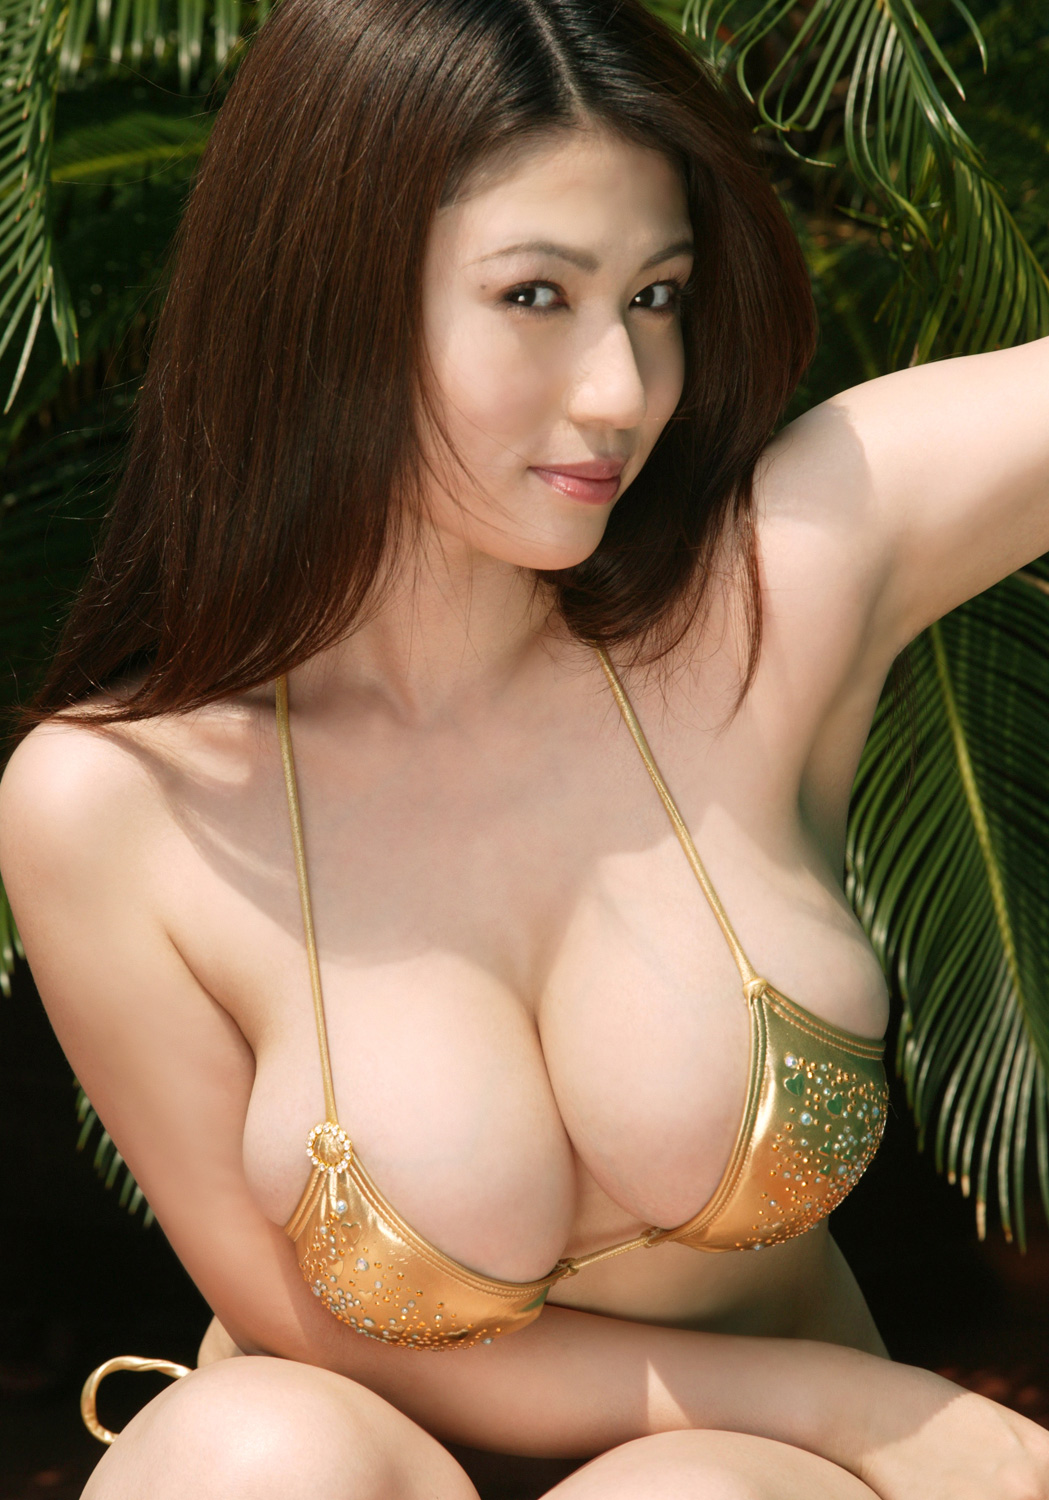 All Asian girl sexy boobs thought